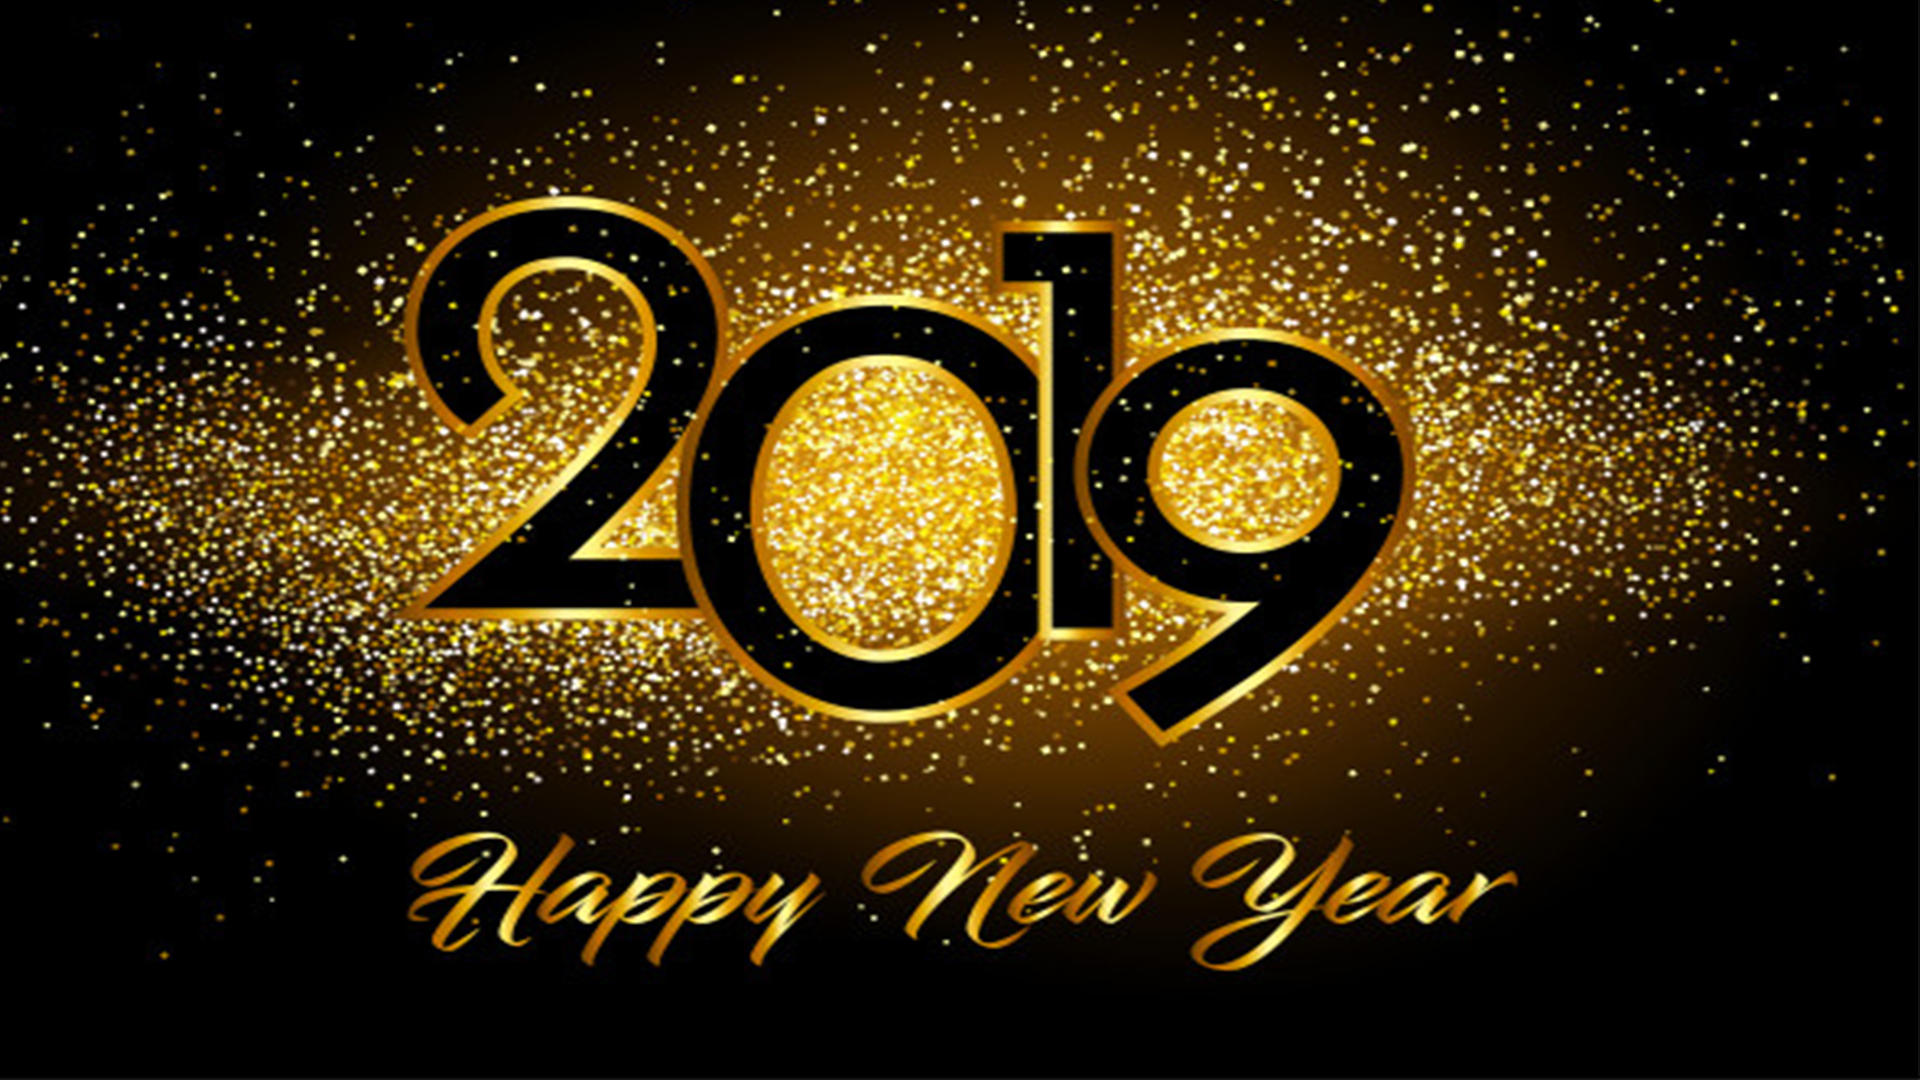 Happy New Year 2019 Hd Images Pictures Wallpapers Free Download